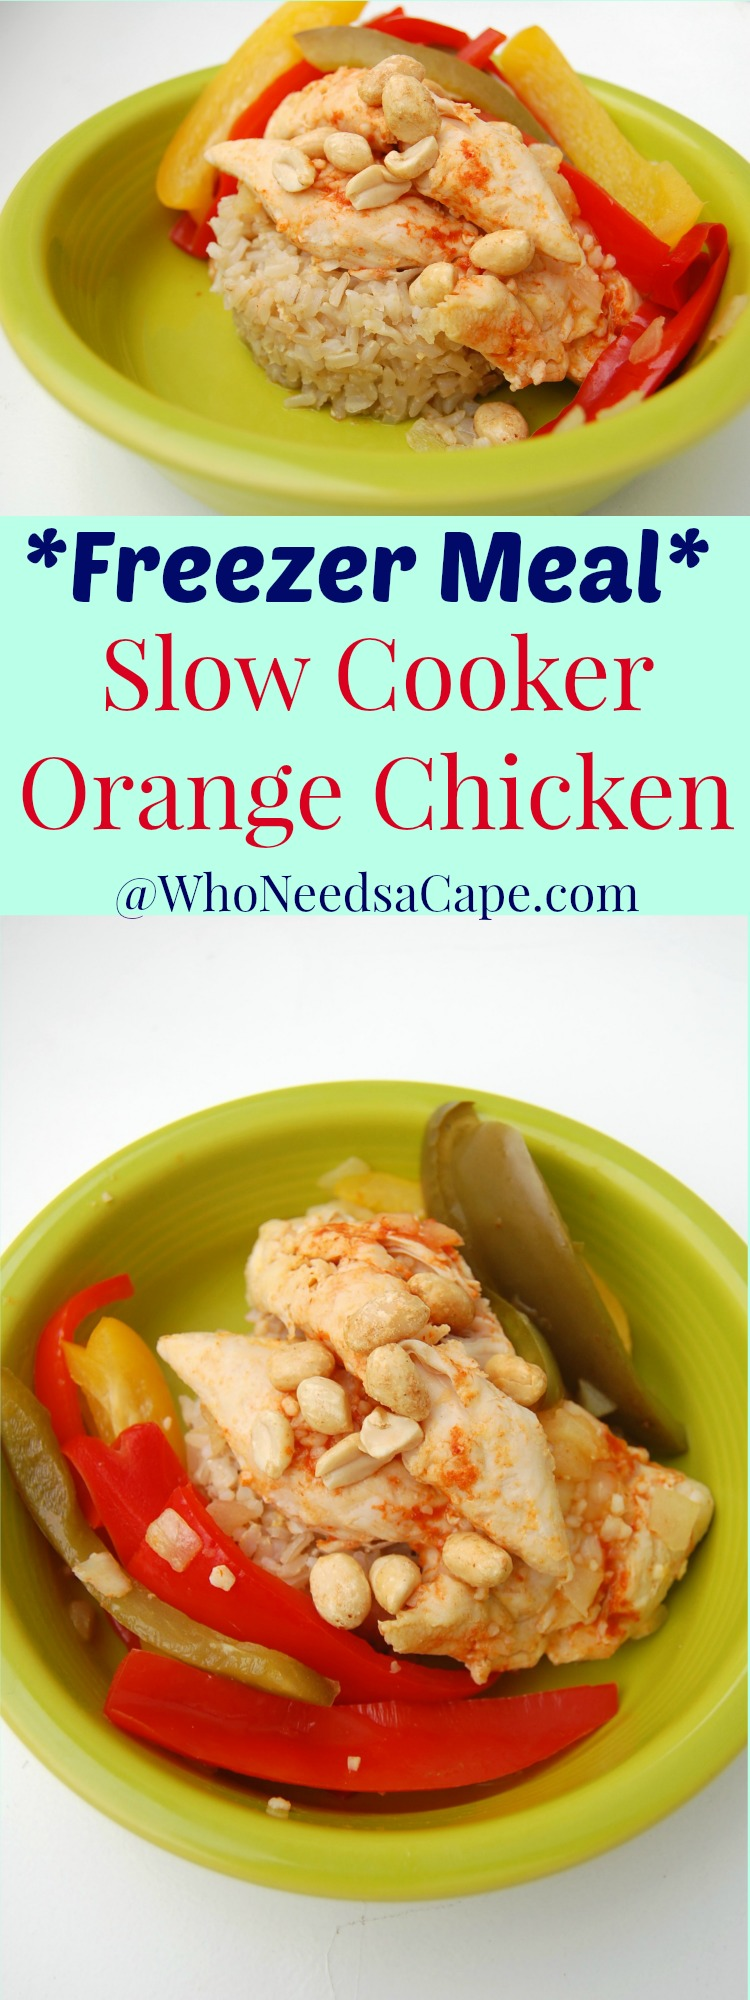 Slow Cooker Orange Chicken is a fantastic Freezer Meal - great flavor, easy - perfect for any night!